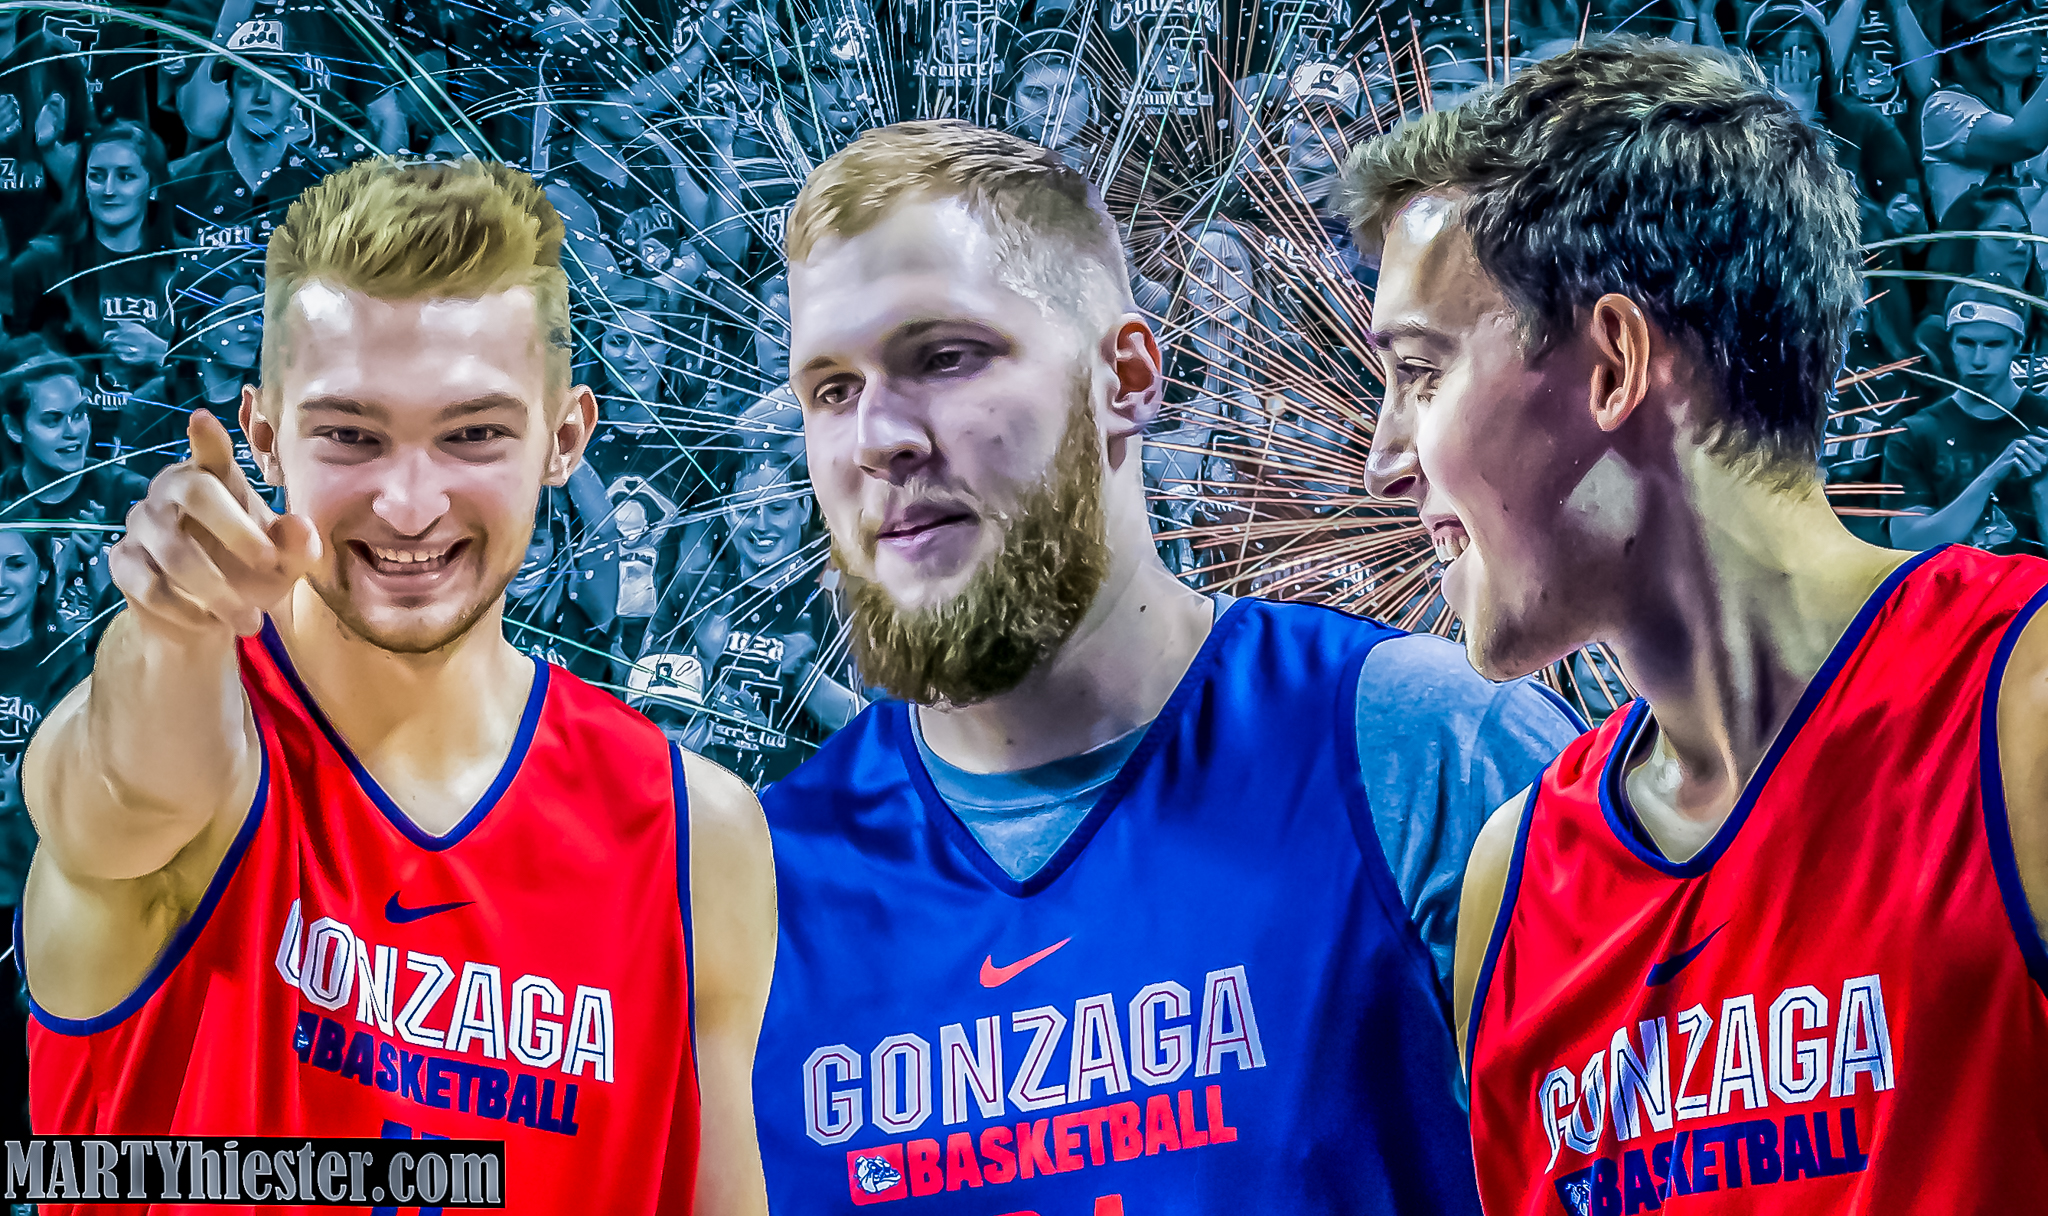 gonzaga-basketball-front-court-2015-.jpg